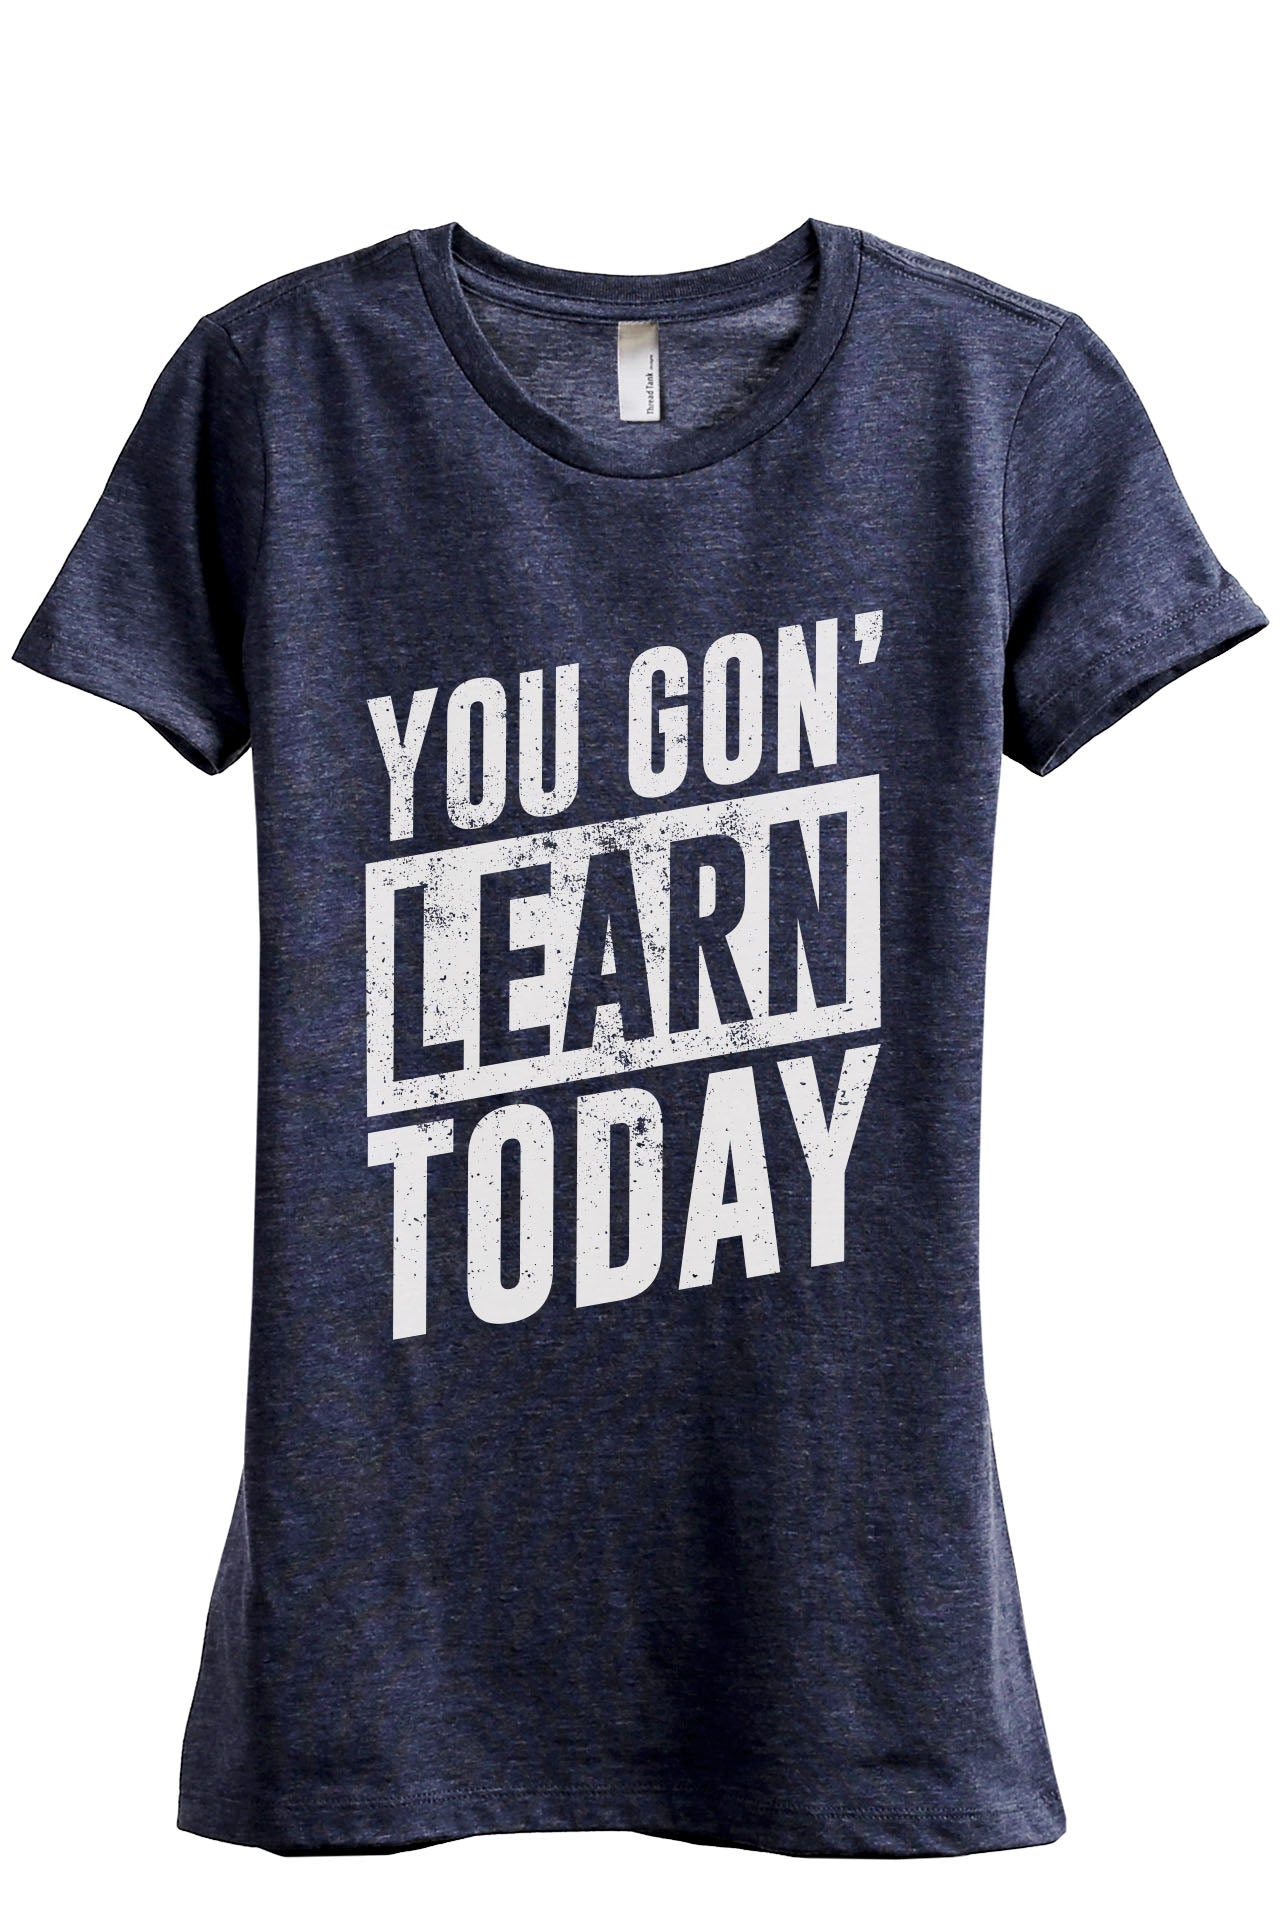 You gon Learn Today Women's Relaxed Crewneck T-Shirt Top Tee Heather Navy